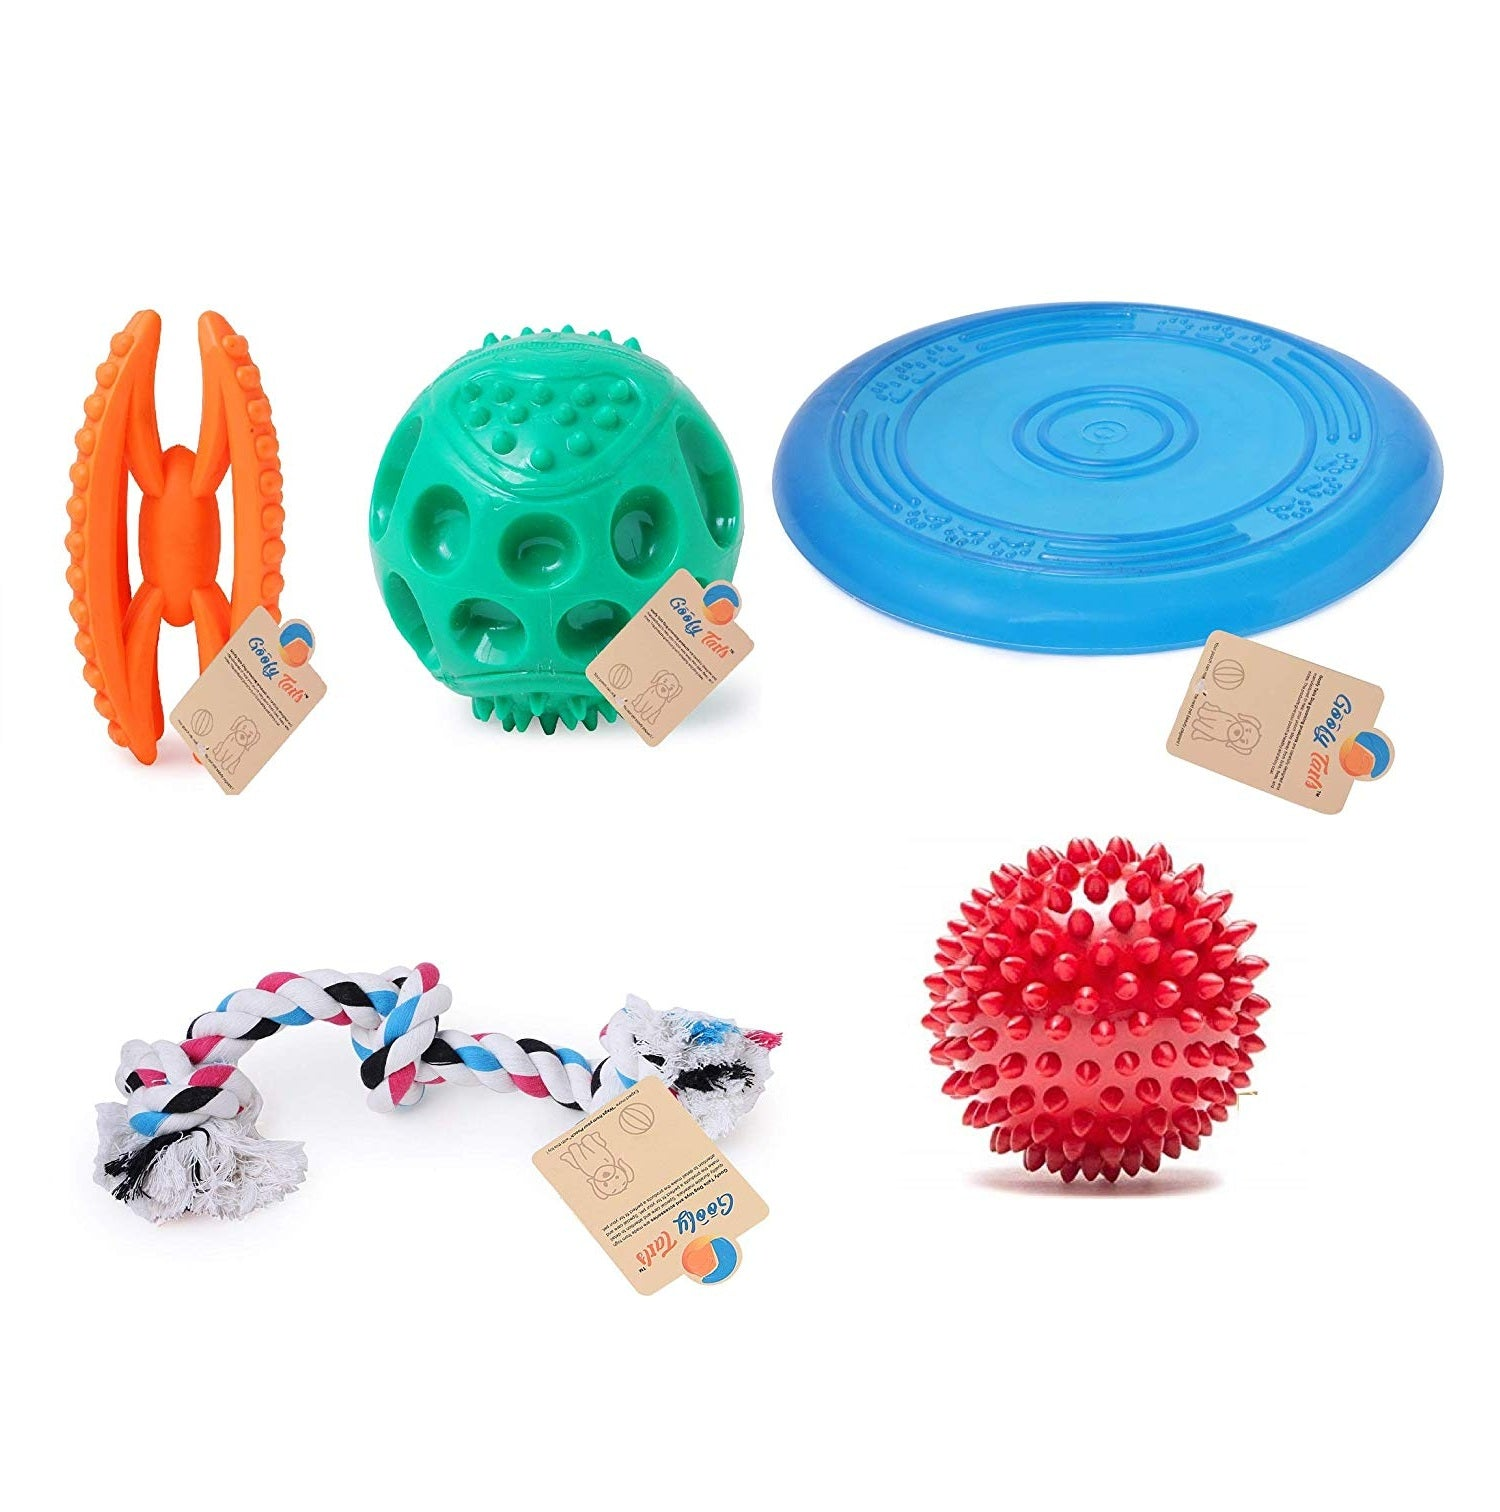 Goofy Tails Natural Rubber Chew,Teething Toys,Interactive, Dog Chew Combo for Medium Dog Toys - pet-club-india